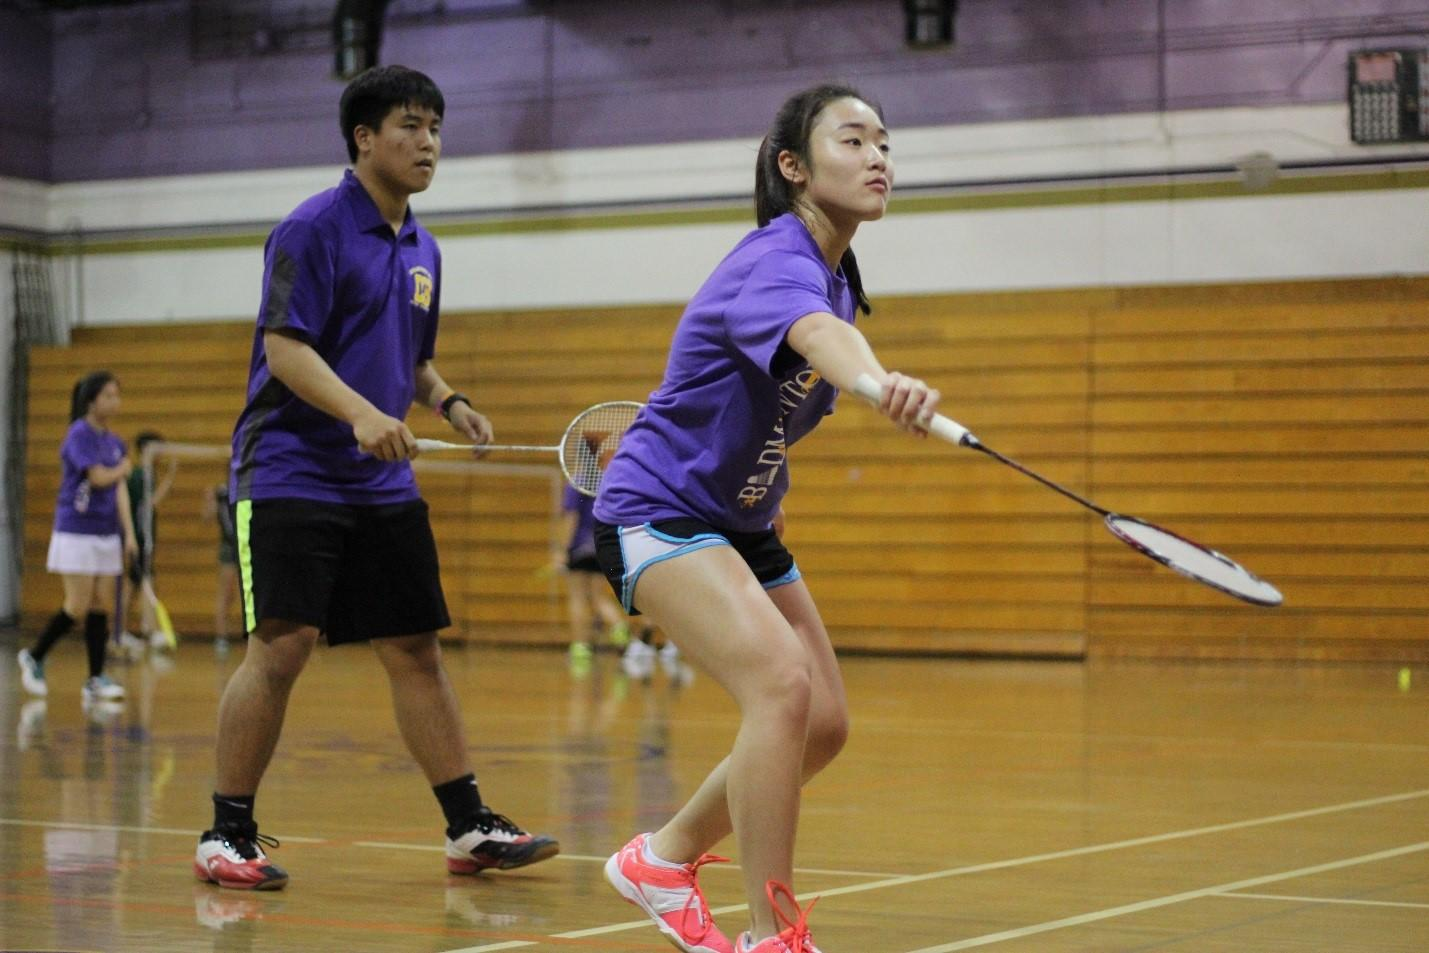 Senior Justin Lam and sophomore Mirabelle Huang compete in mixed doubles.